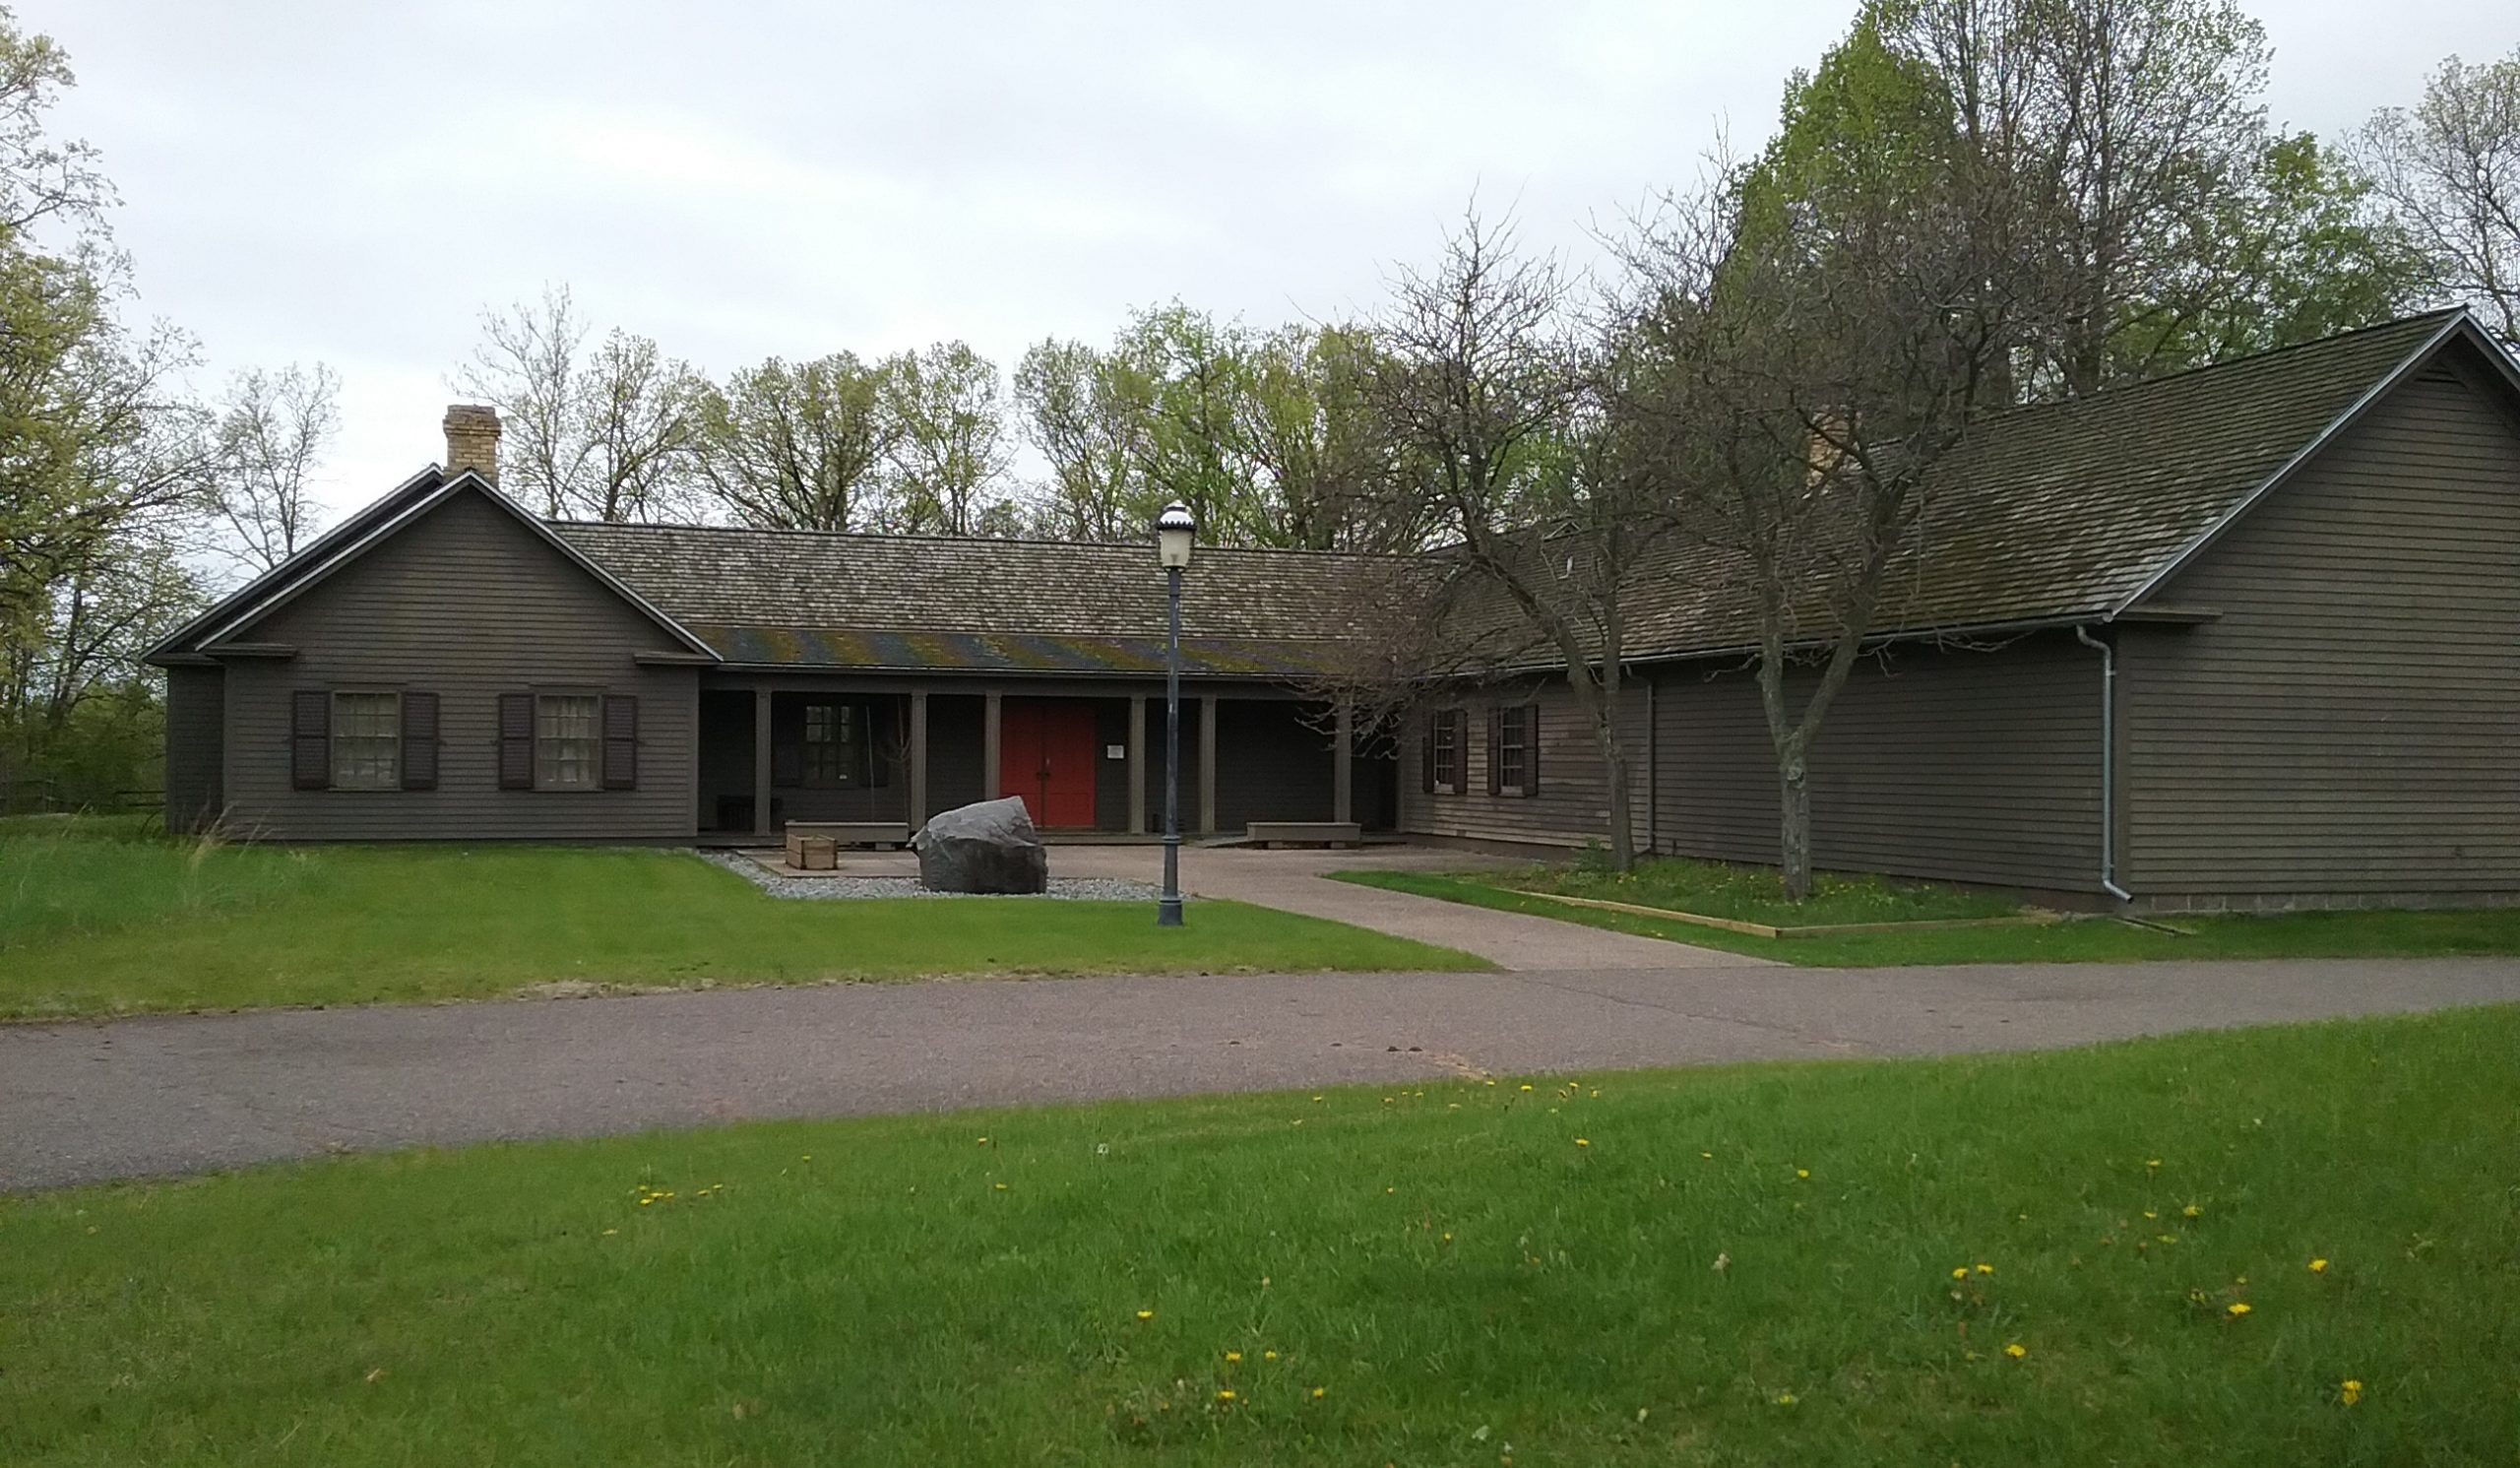 The Charles A. Weyerhaeuser Memorial Museum, Little Falls, MN, 2019.